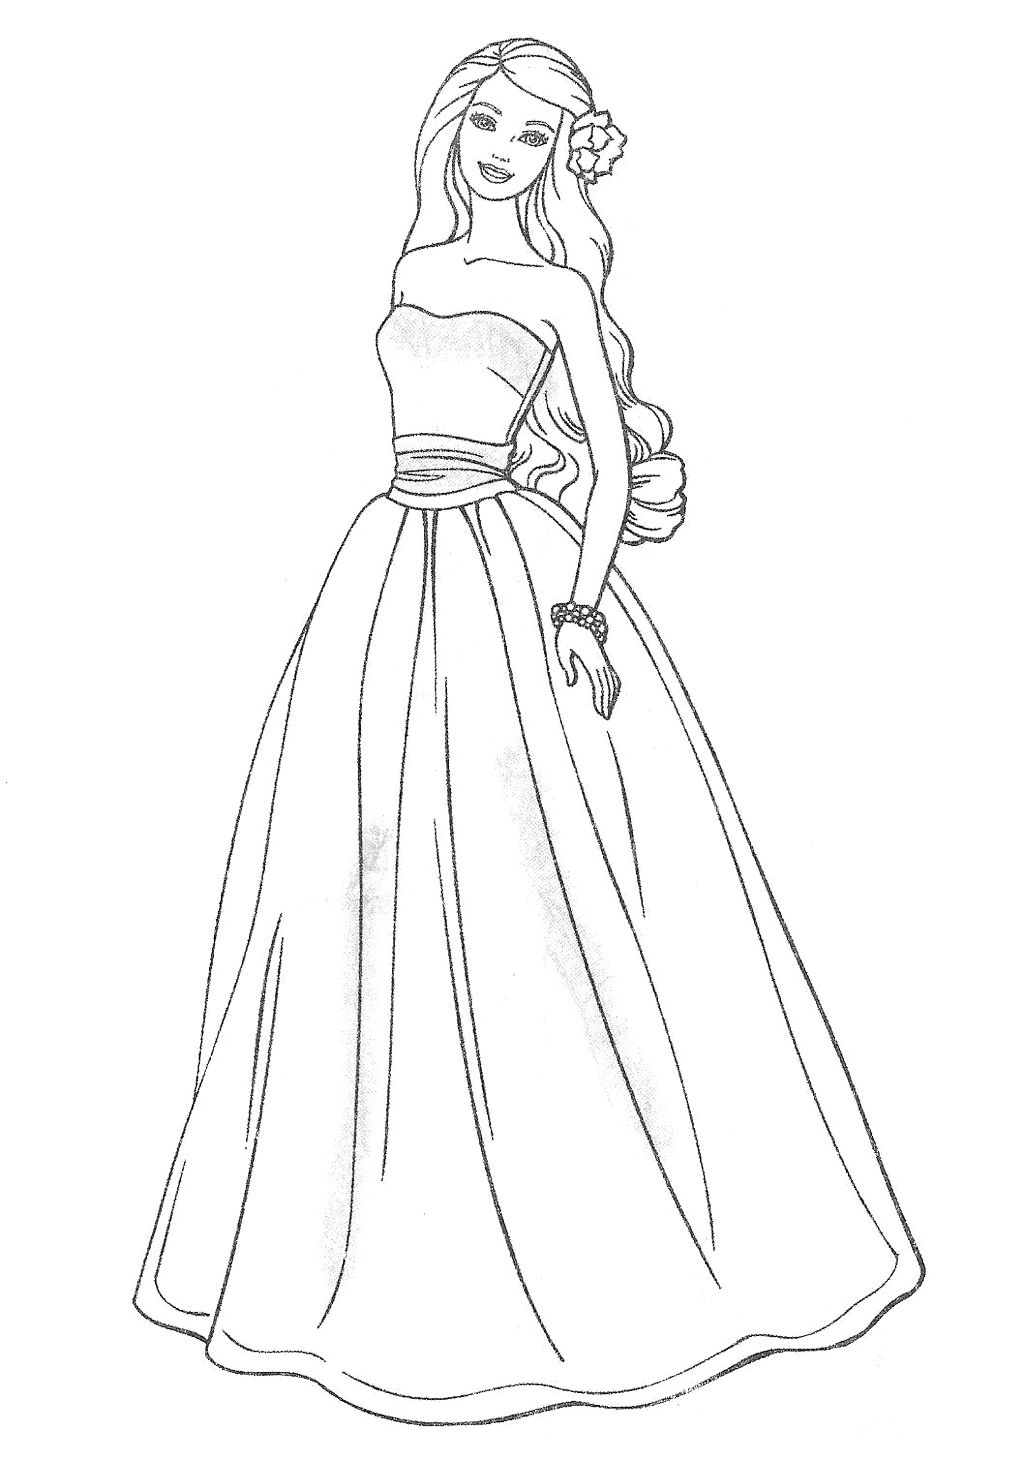 Girl In Dress Coloring Page Ruha Mintatervezés Rajzra